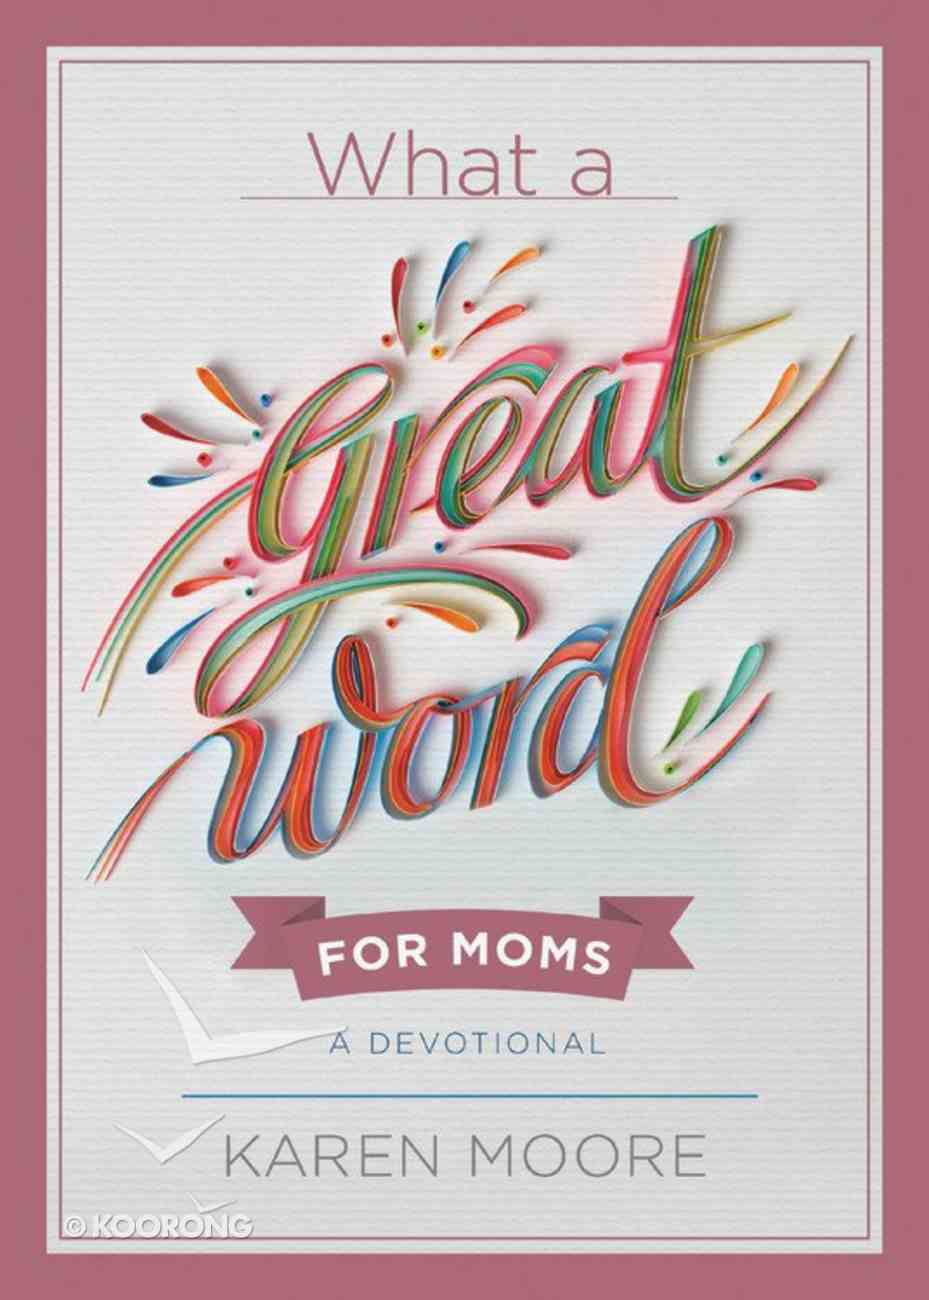 What a Great Word For Moms: A Devotional Hardback